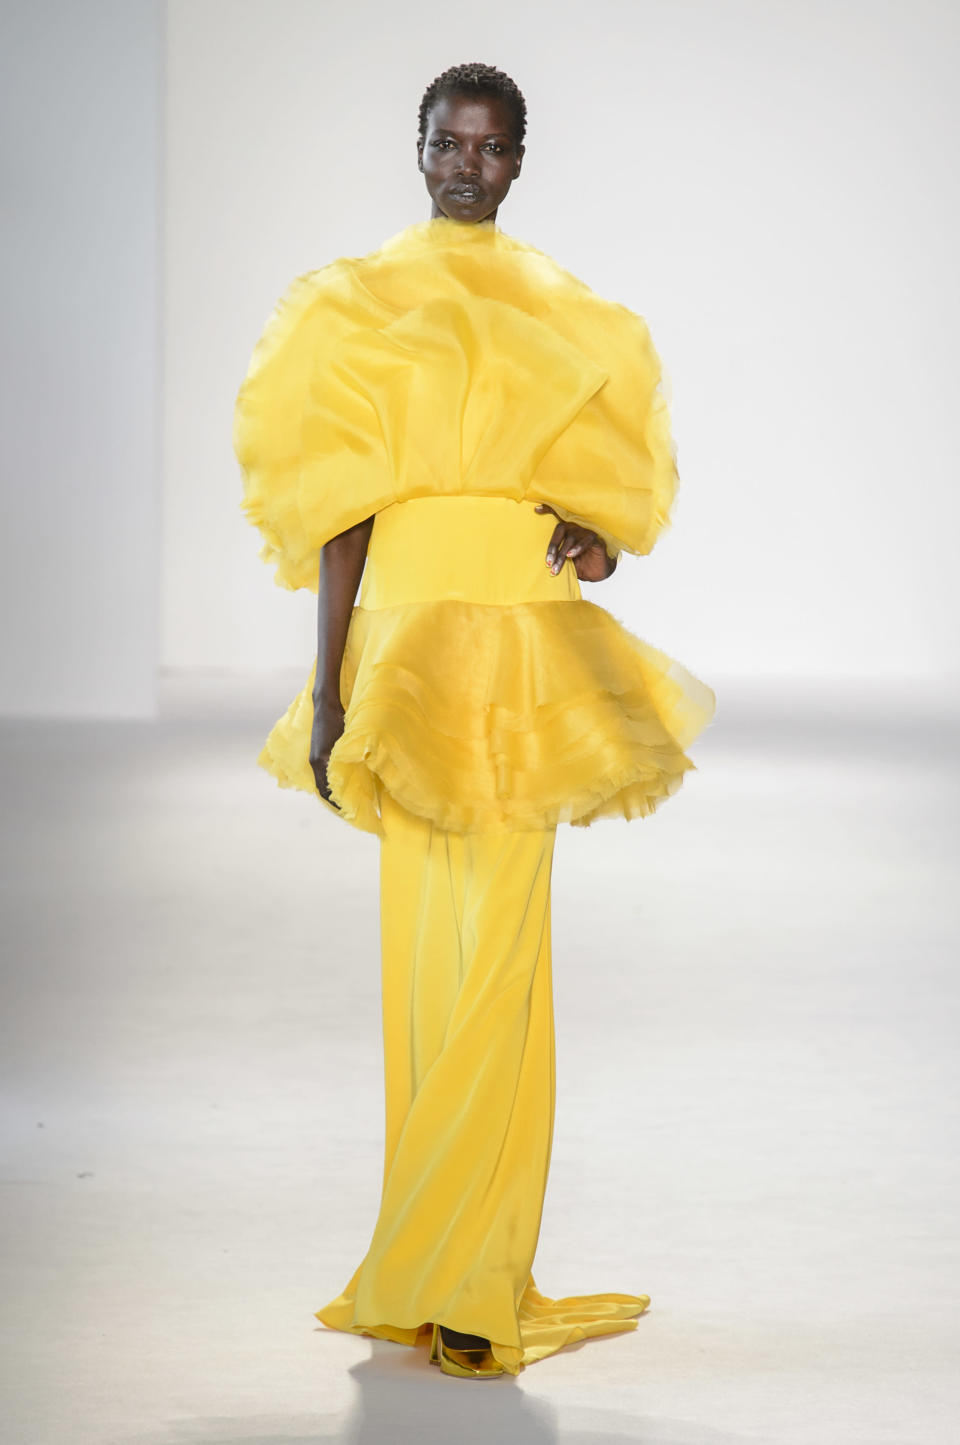 <p><i>Model Alek Wek wears an exaggerated bright yellow dress from the SS18 Christian Siriano collection. (Photo: ImaxTree) </i></p>